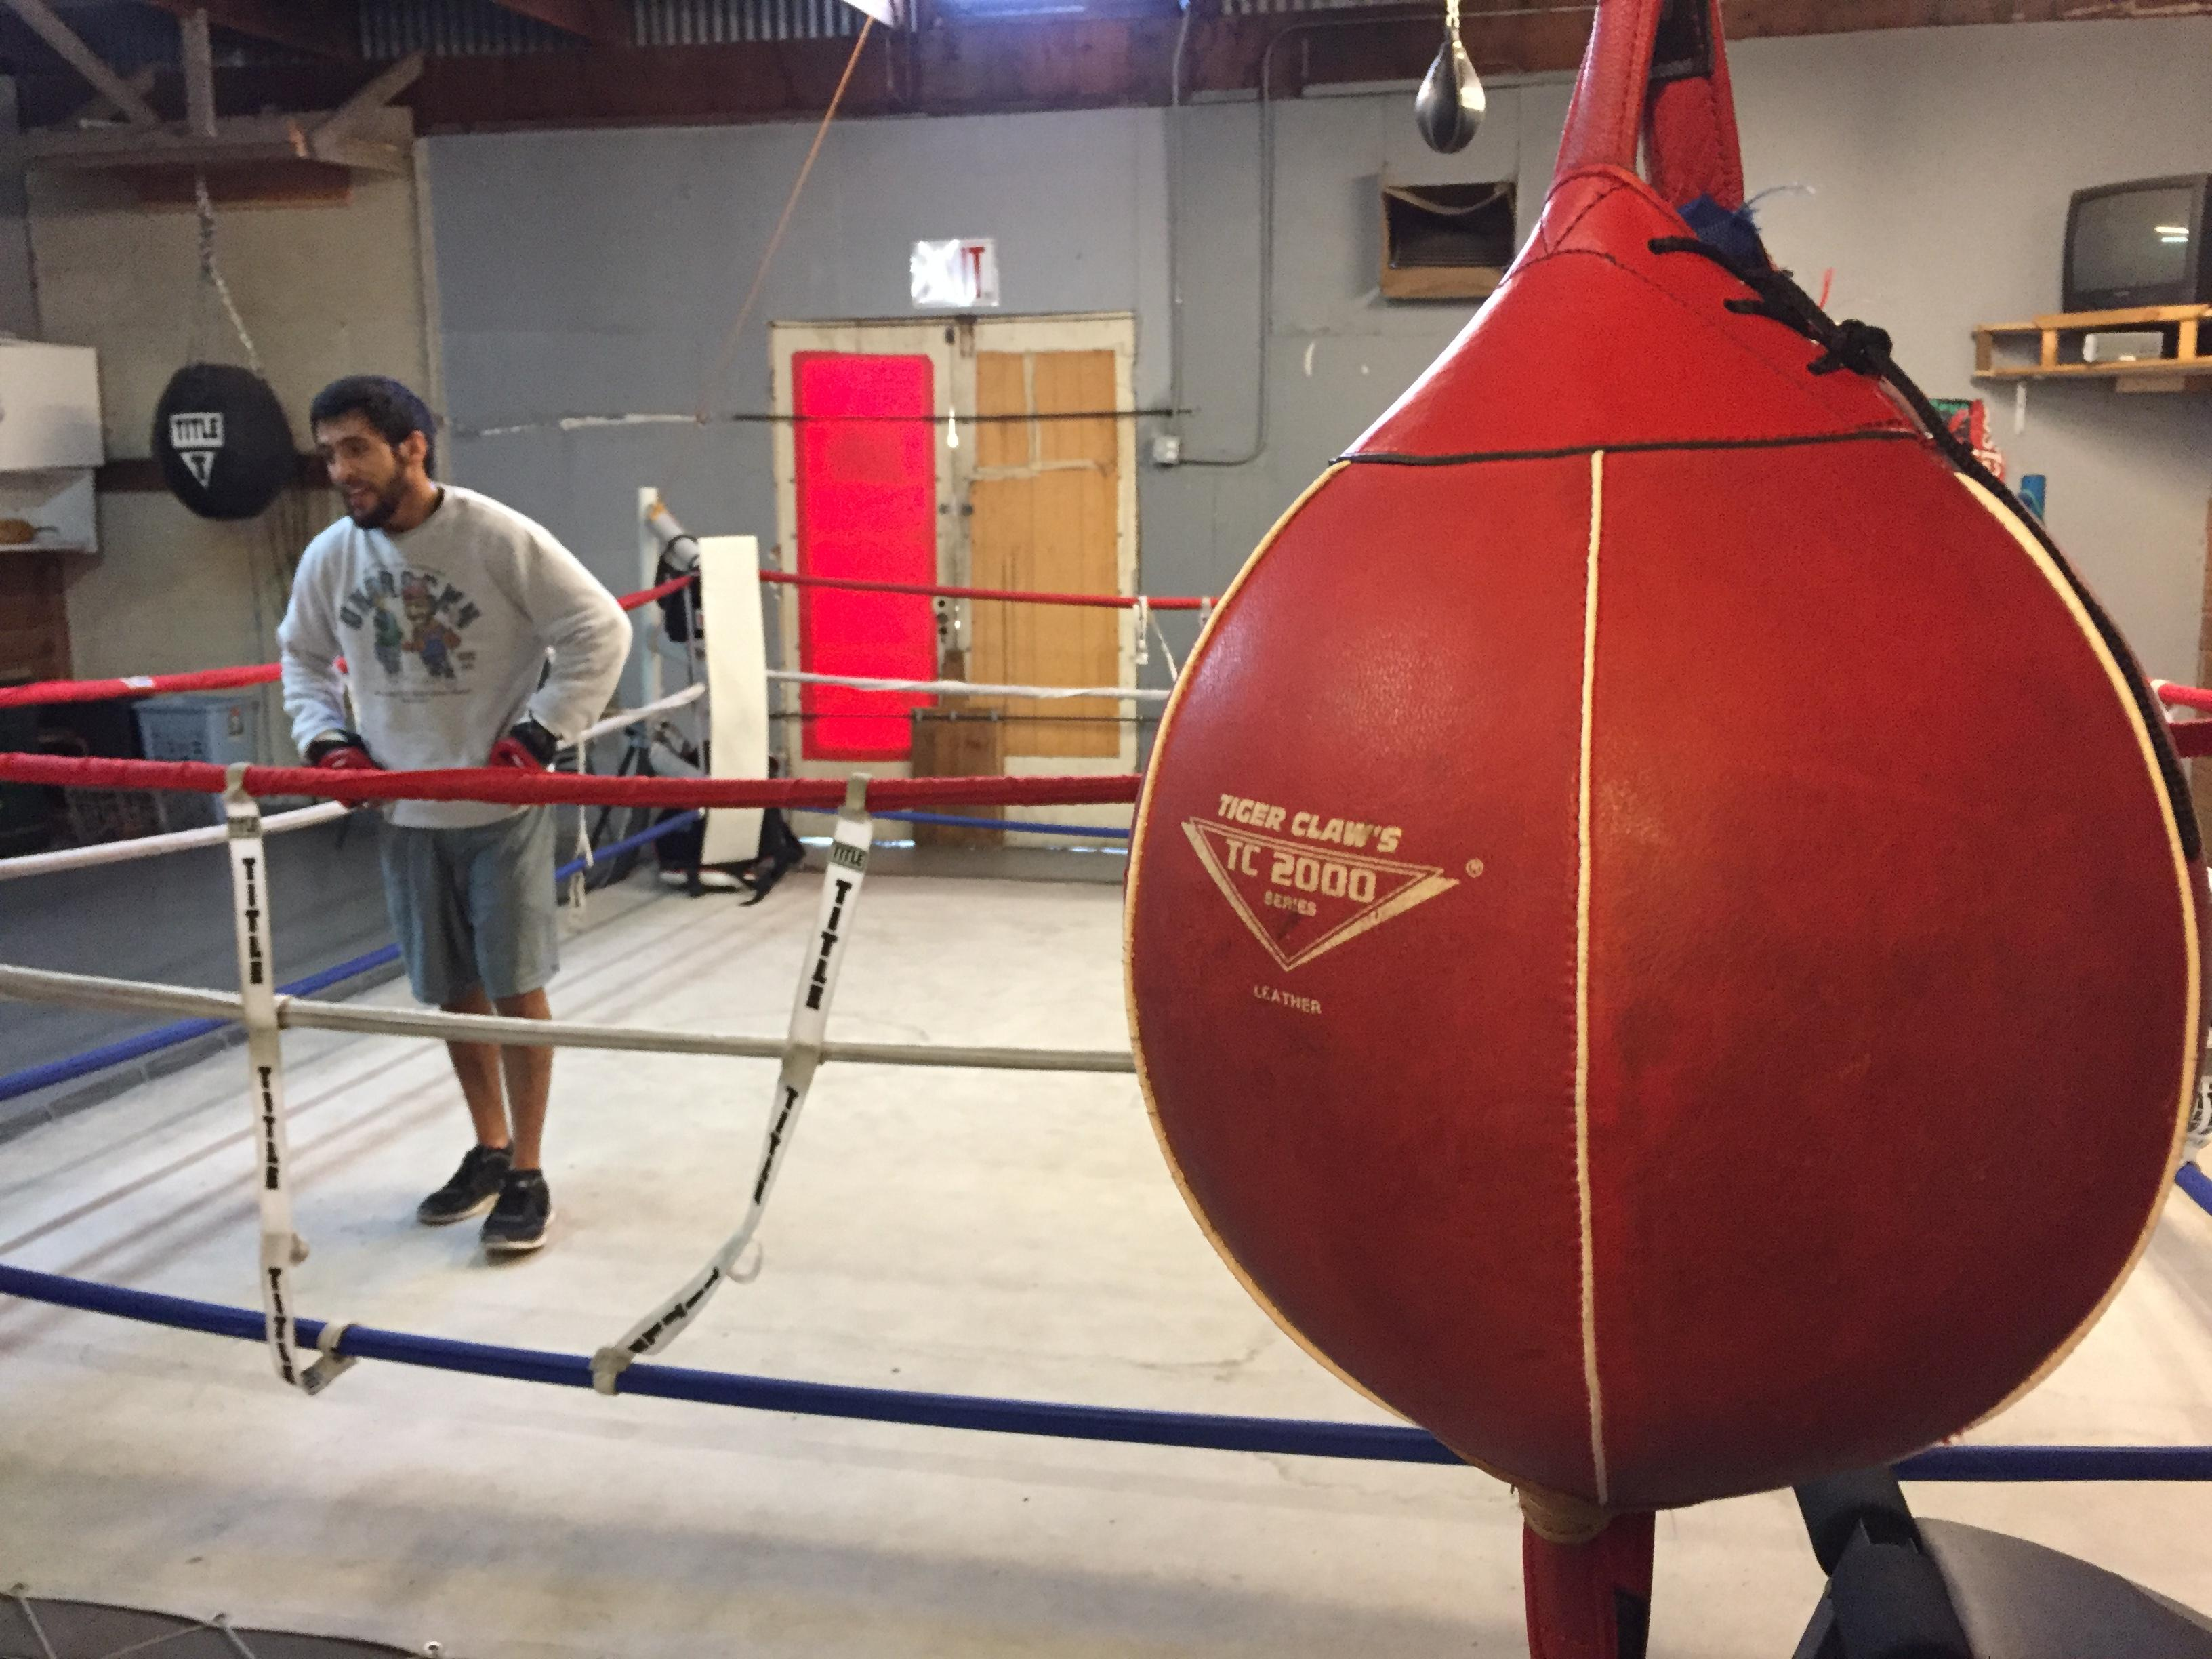 Selma's Samuel Fierro is one of the top amateur MMA fighters in California, after being kicked out of high school and finding himself in and out of jail from age 18 to 22.